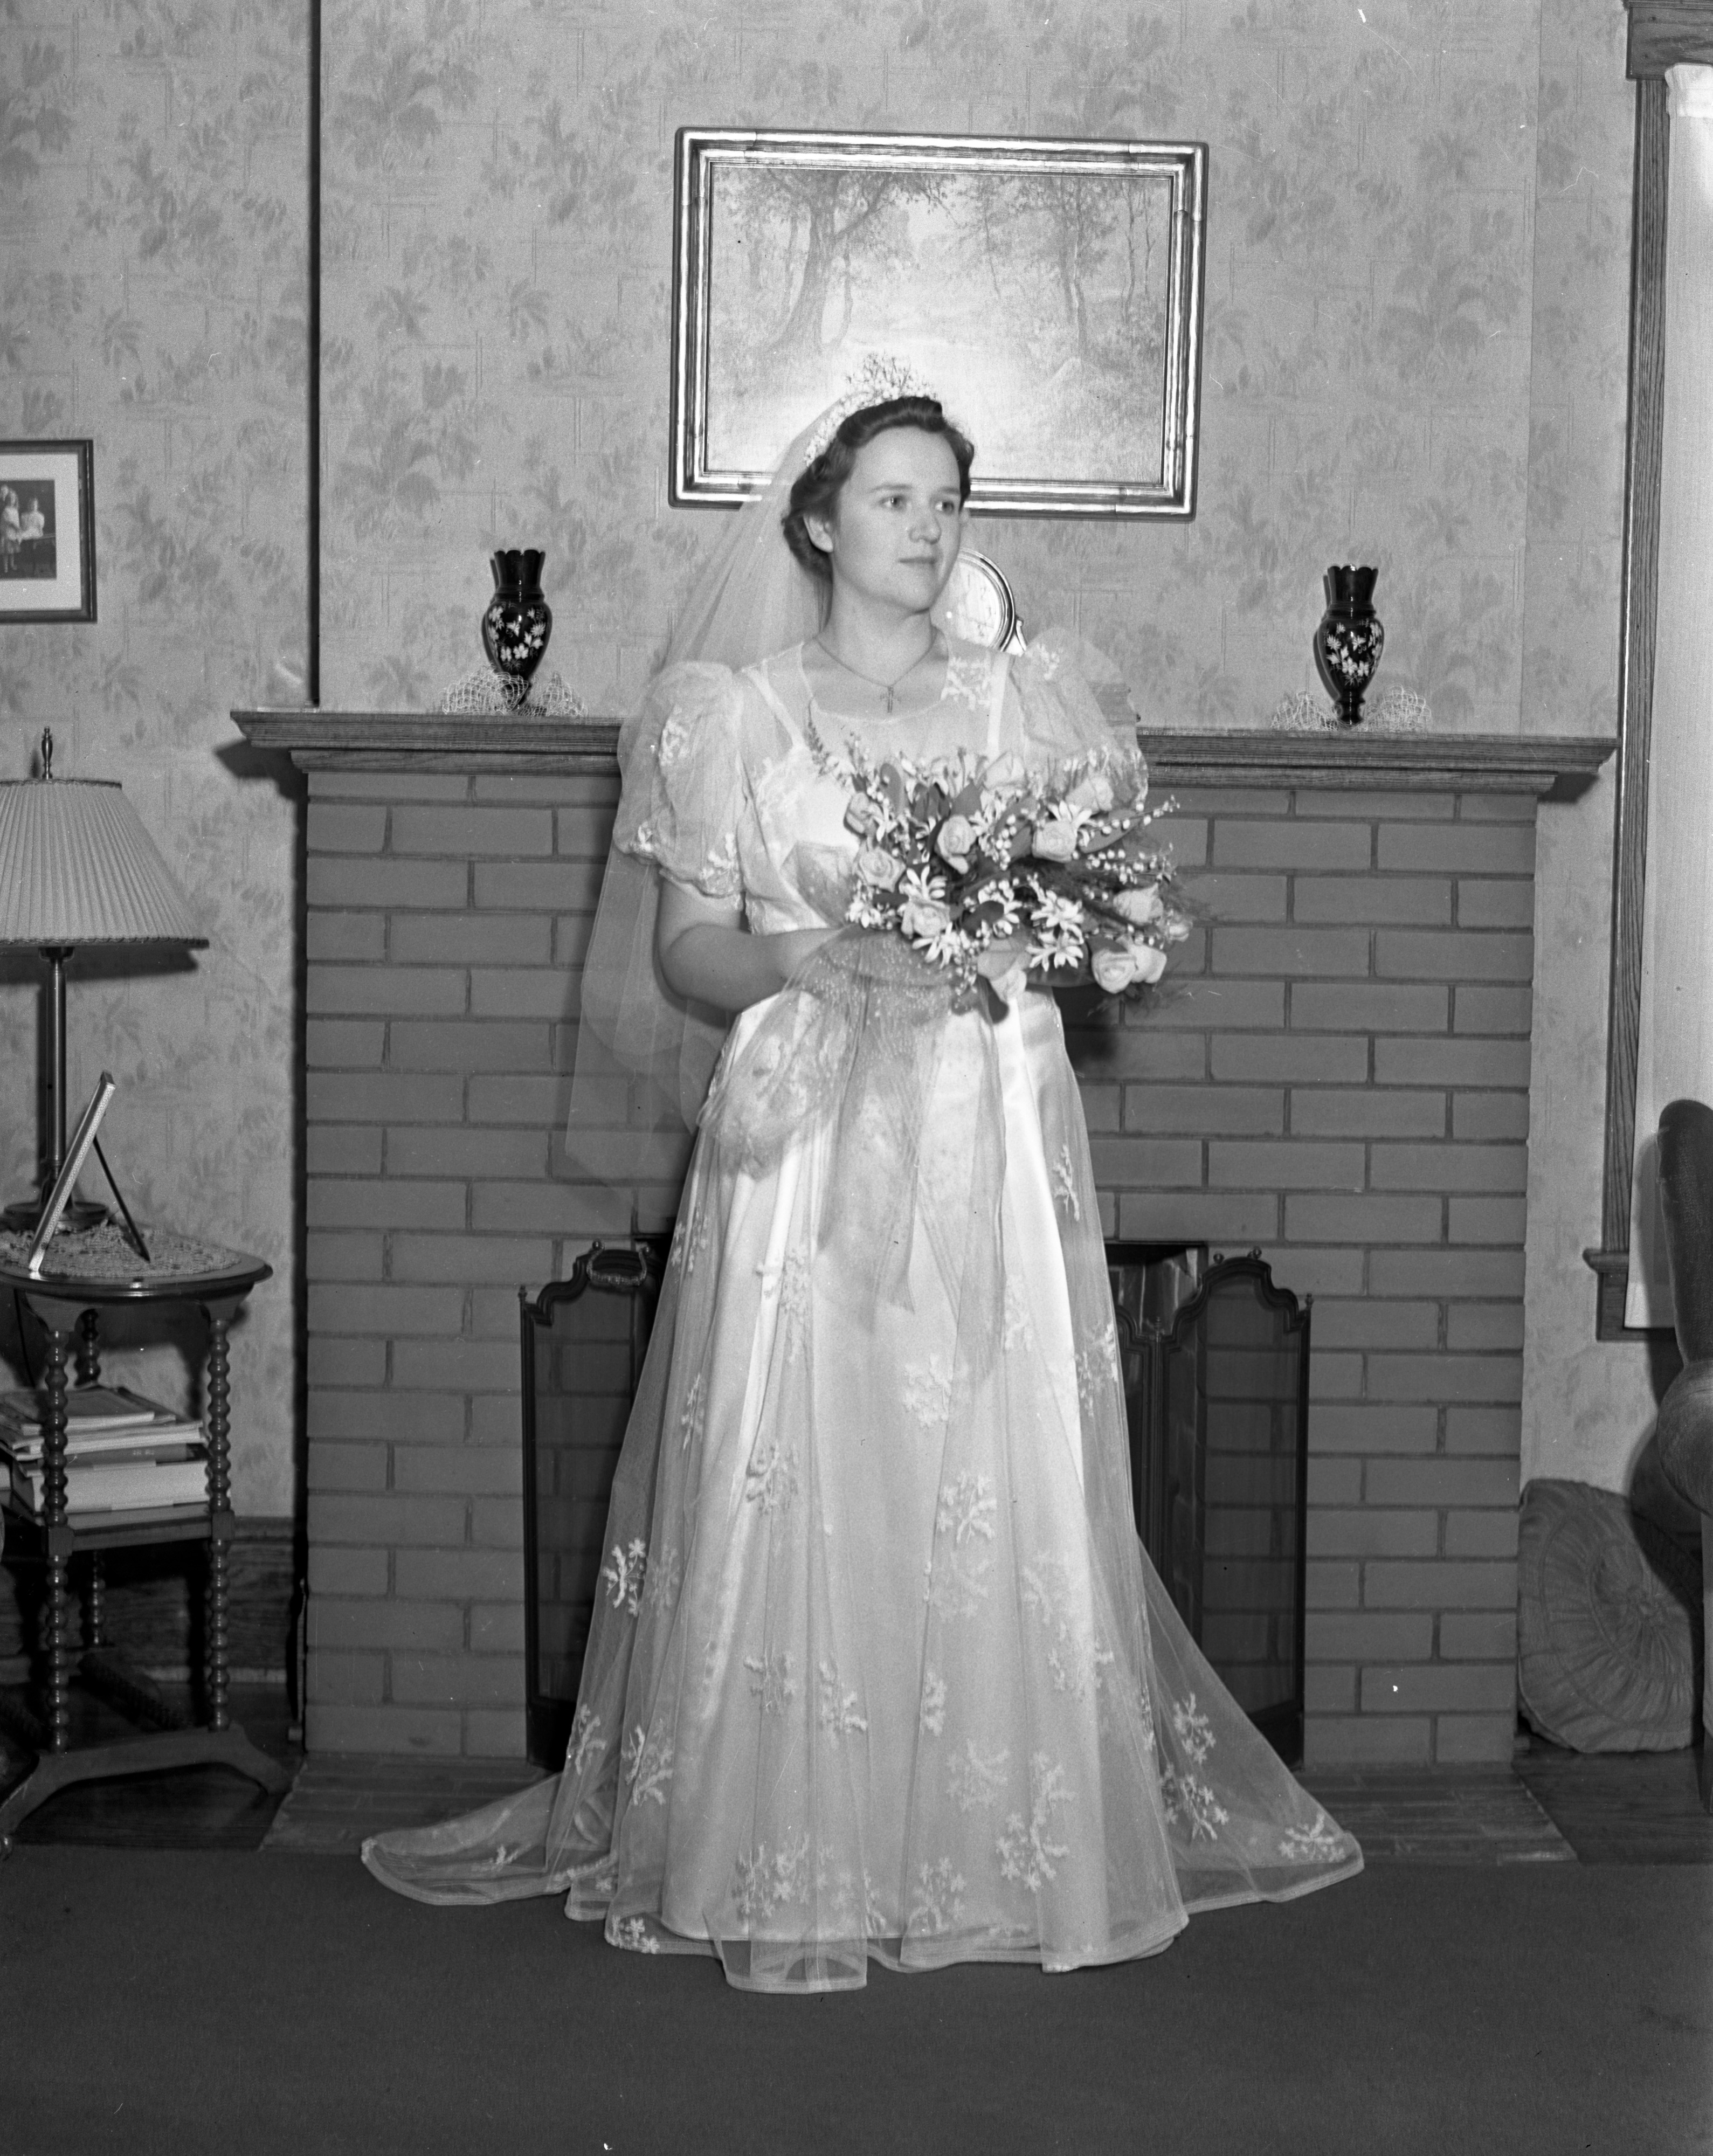 Dorothy Walker Wedding, August 1938 image